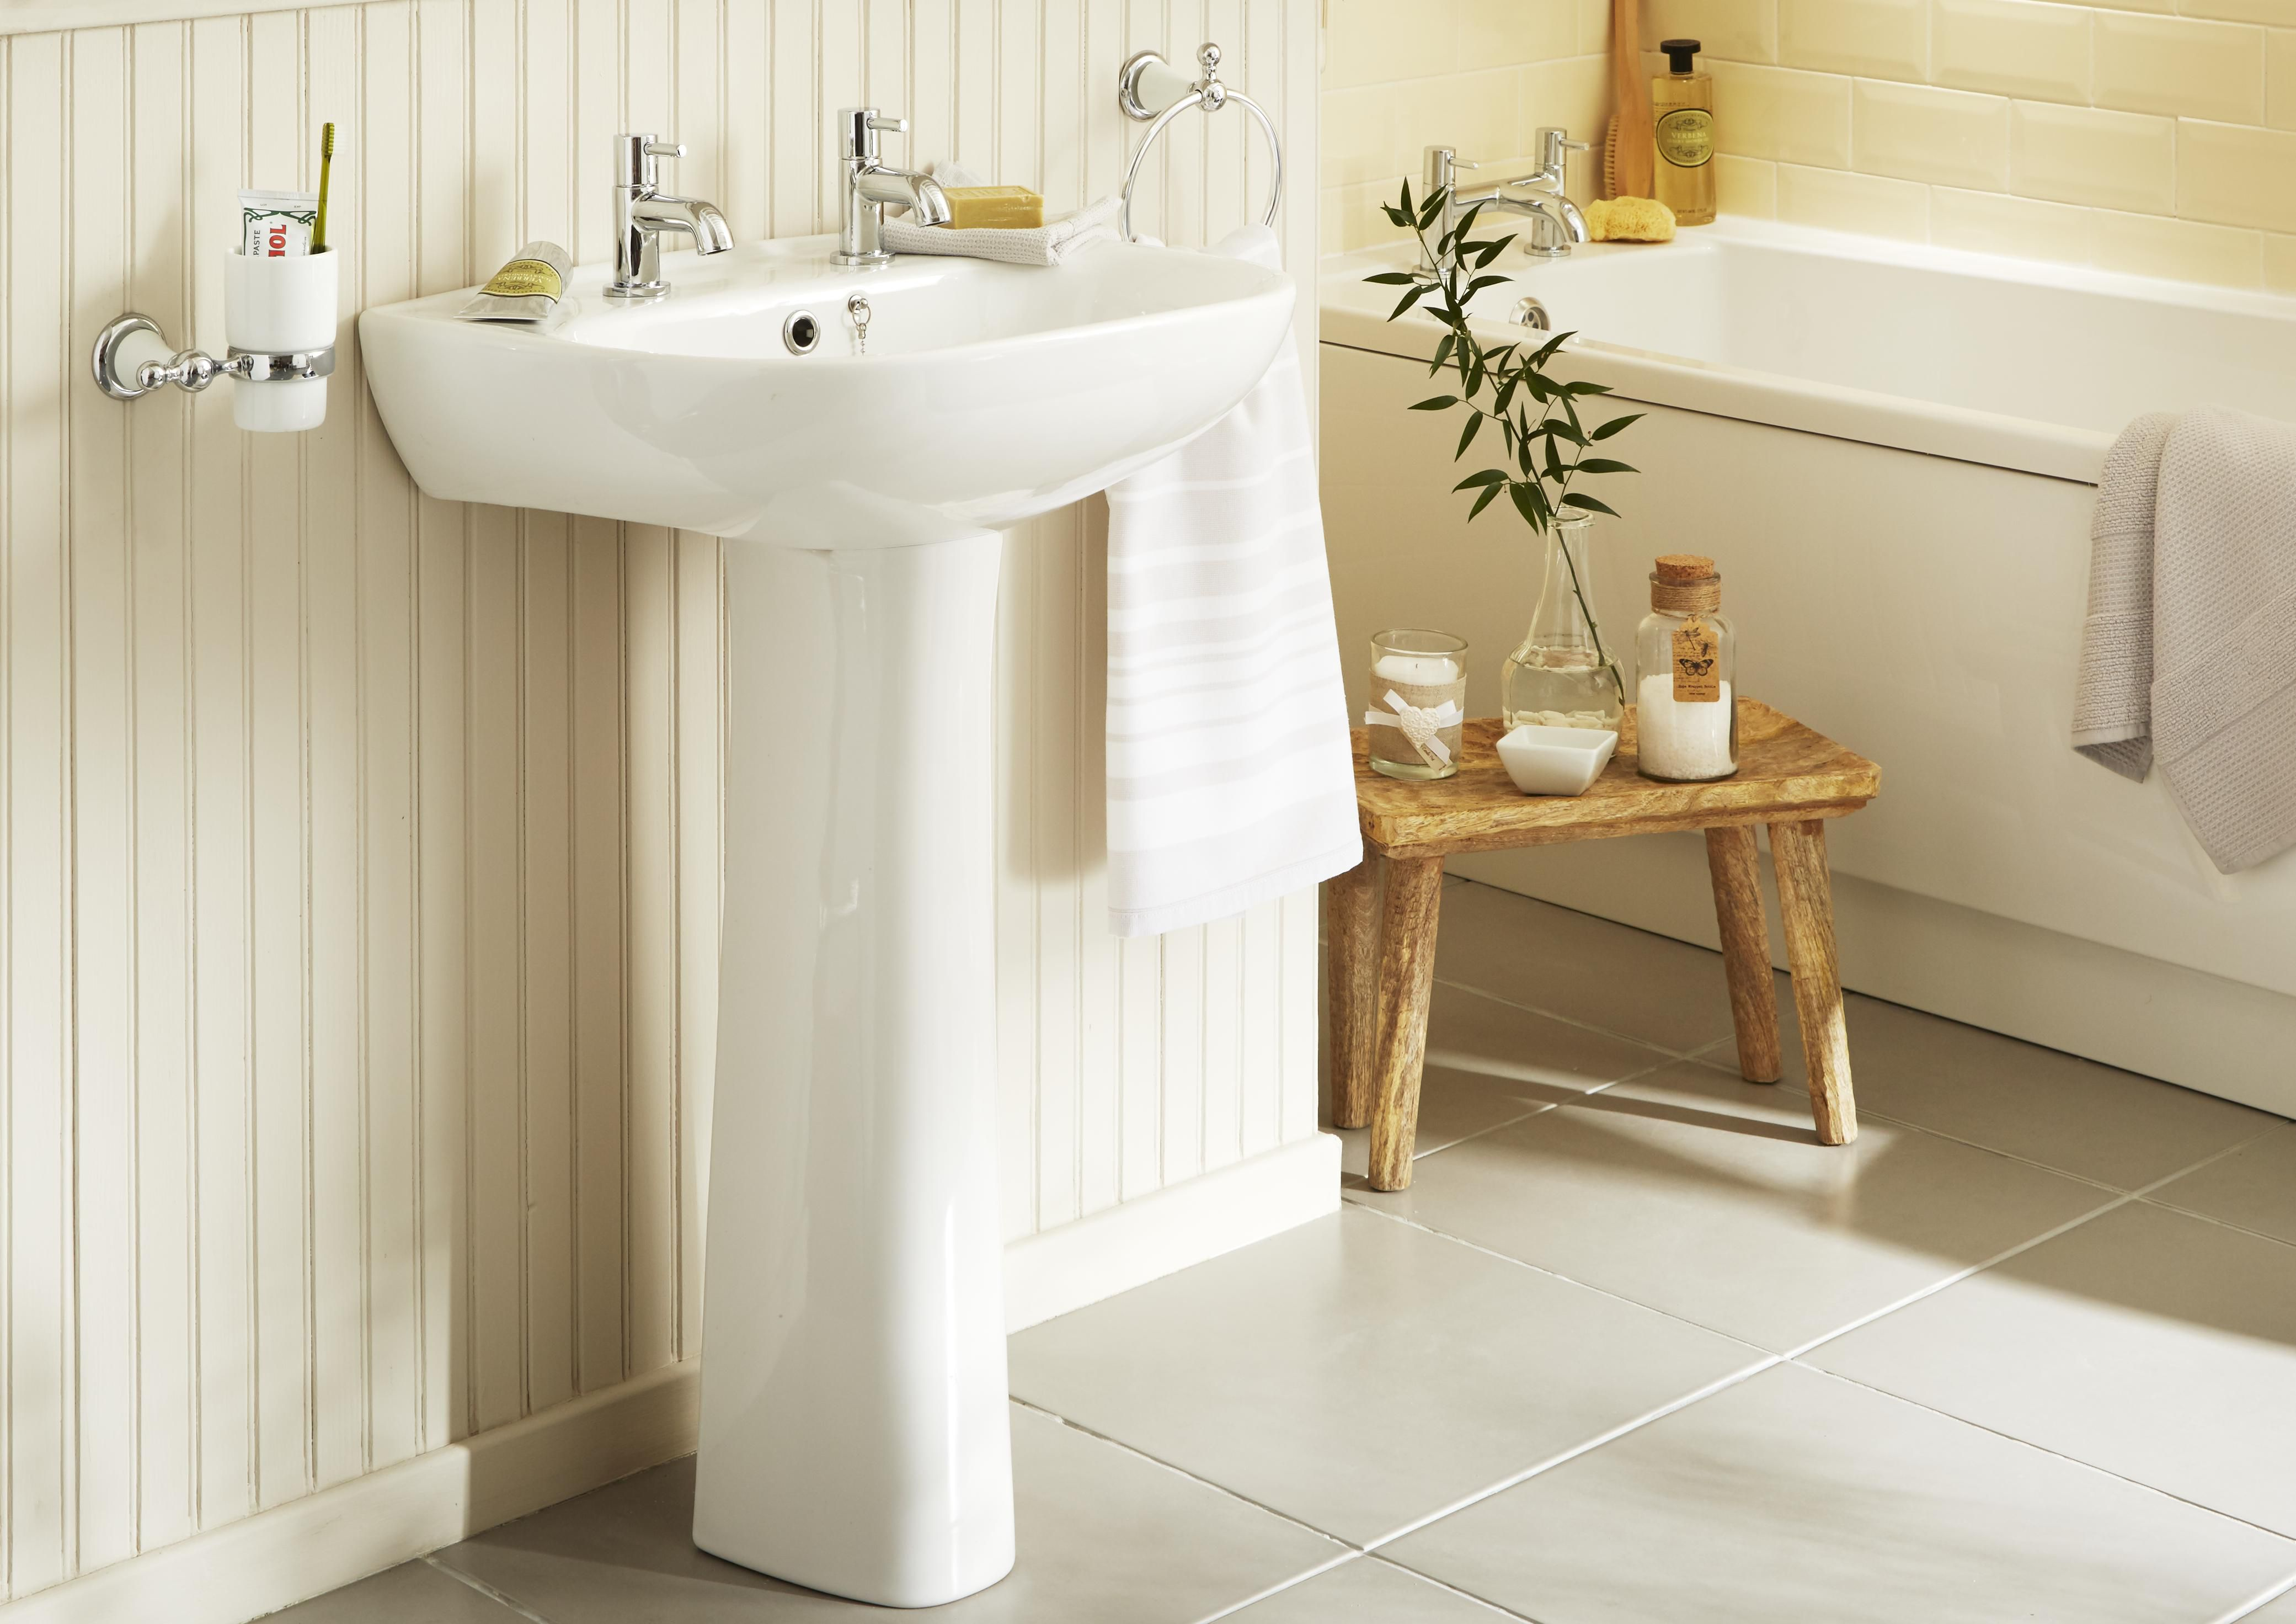 Basin buying guide | Ideas & Advice | DIY at B&Q